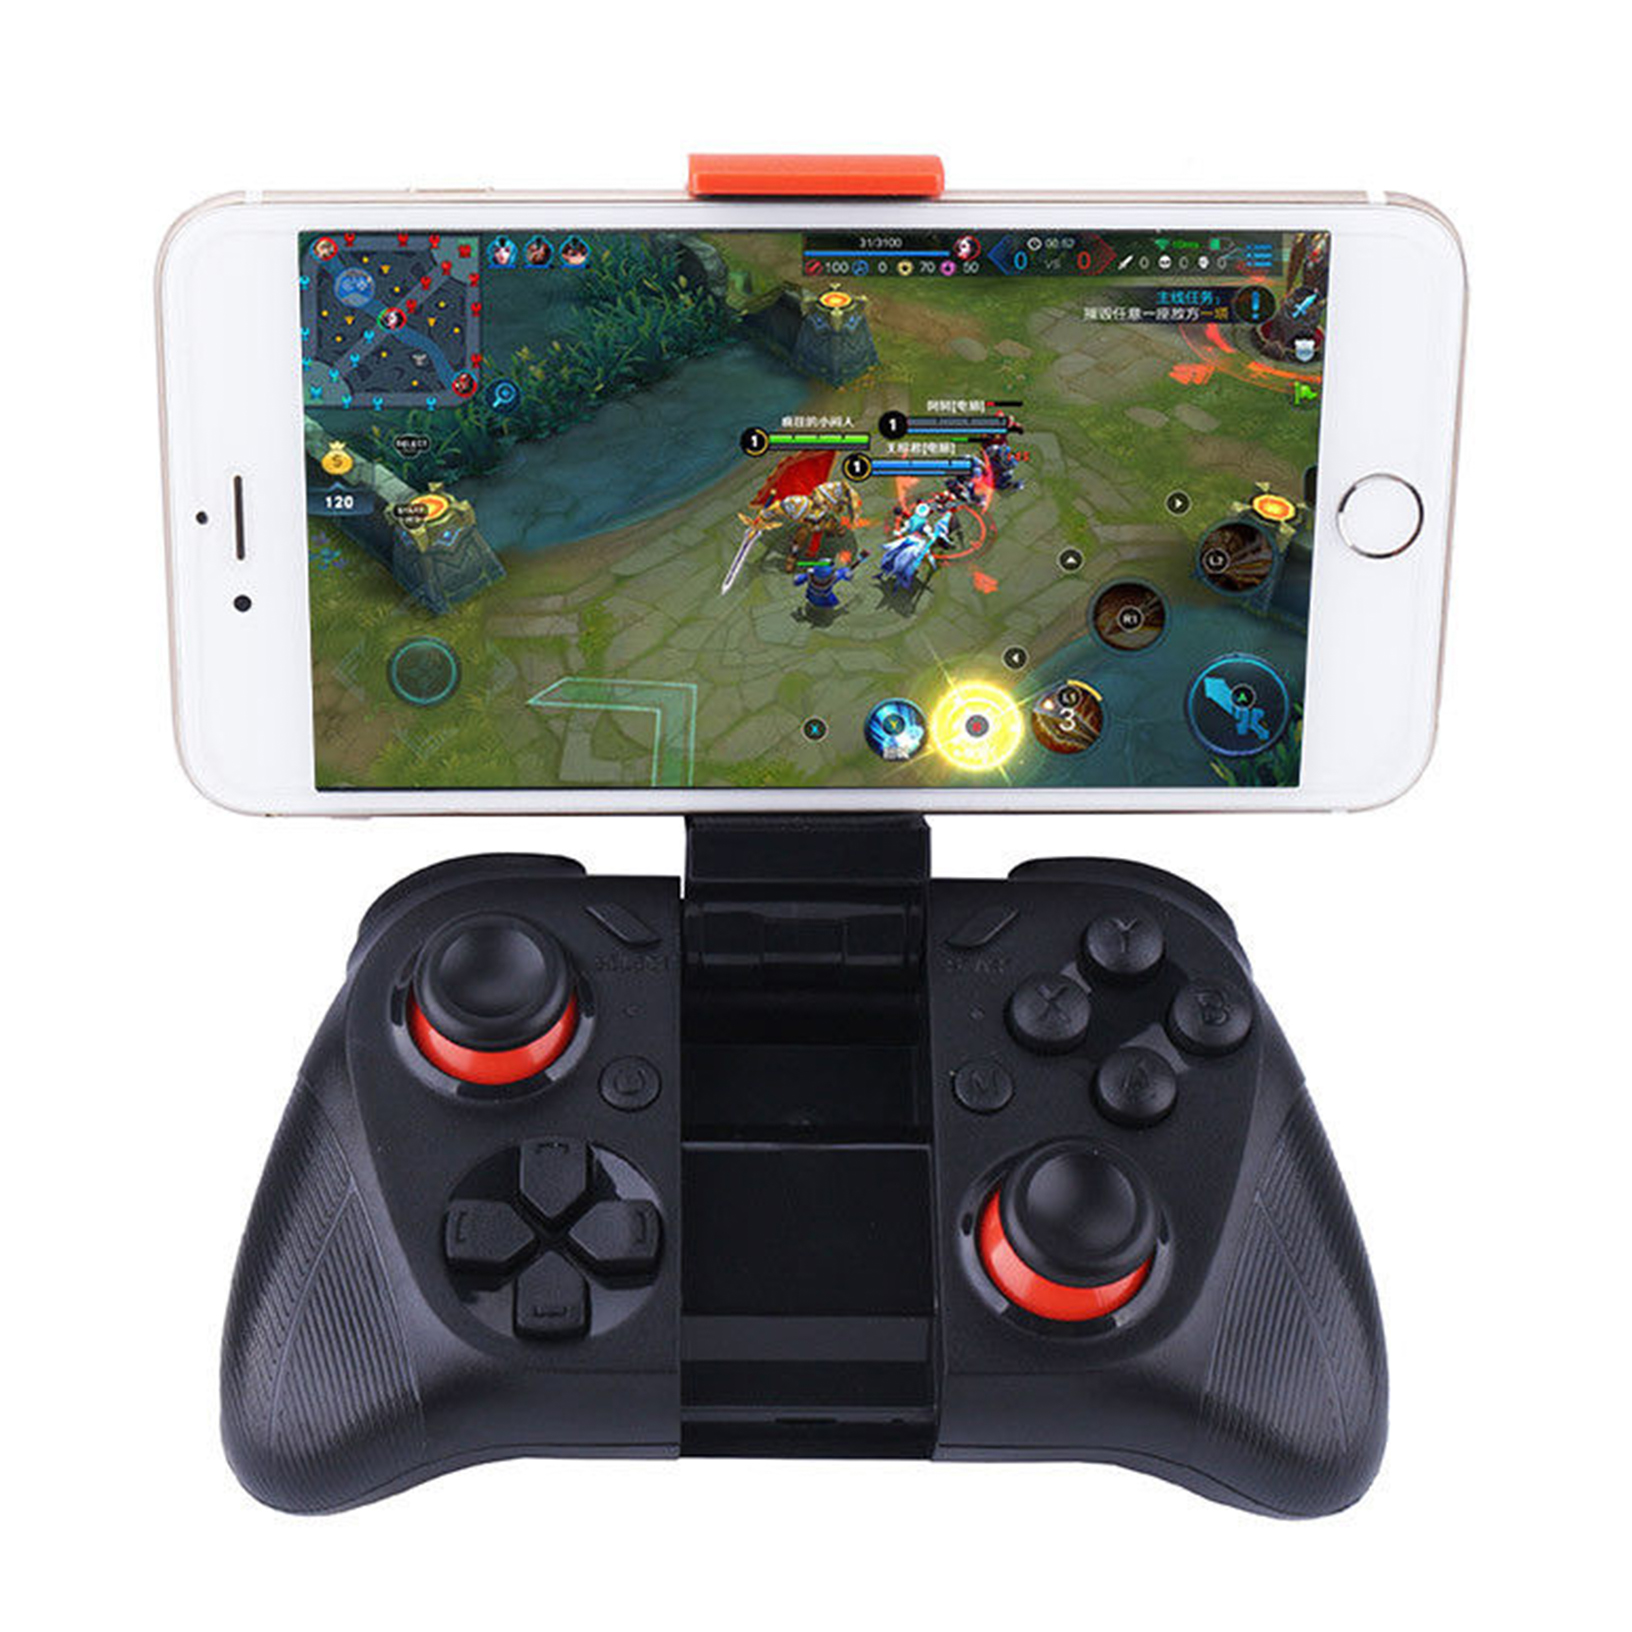 Details about New Mocute 053/054 Bluetooth Gamepad Android Wireless Controller Remote VR Game